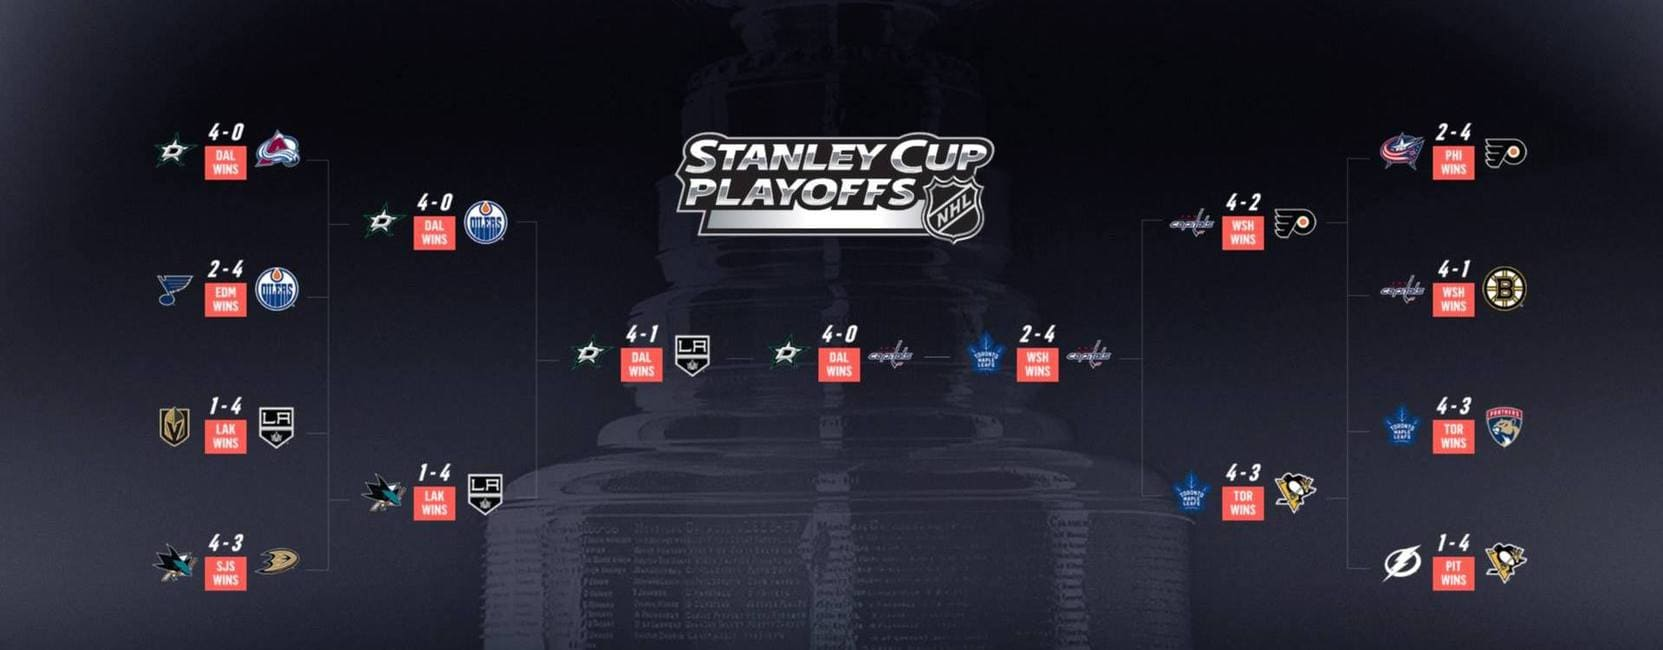 EA Sports NHL 19 Playoffs